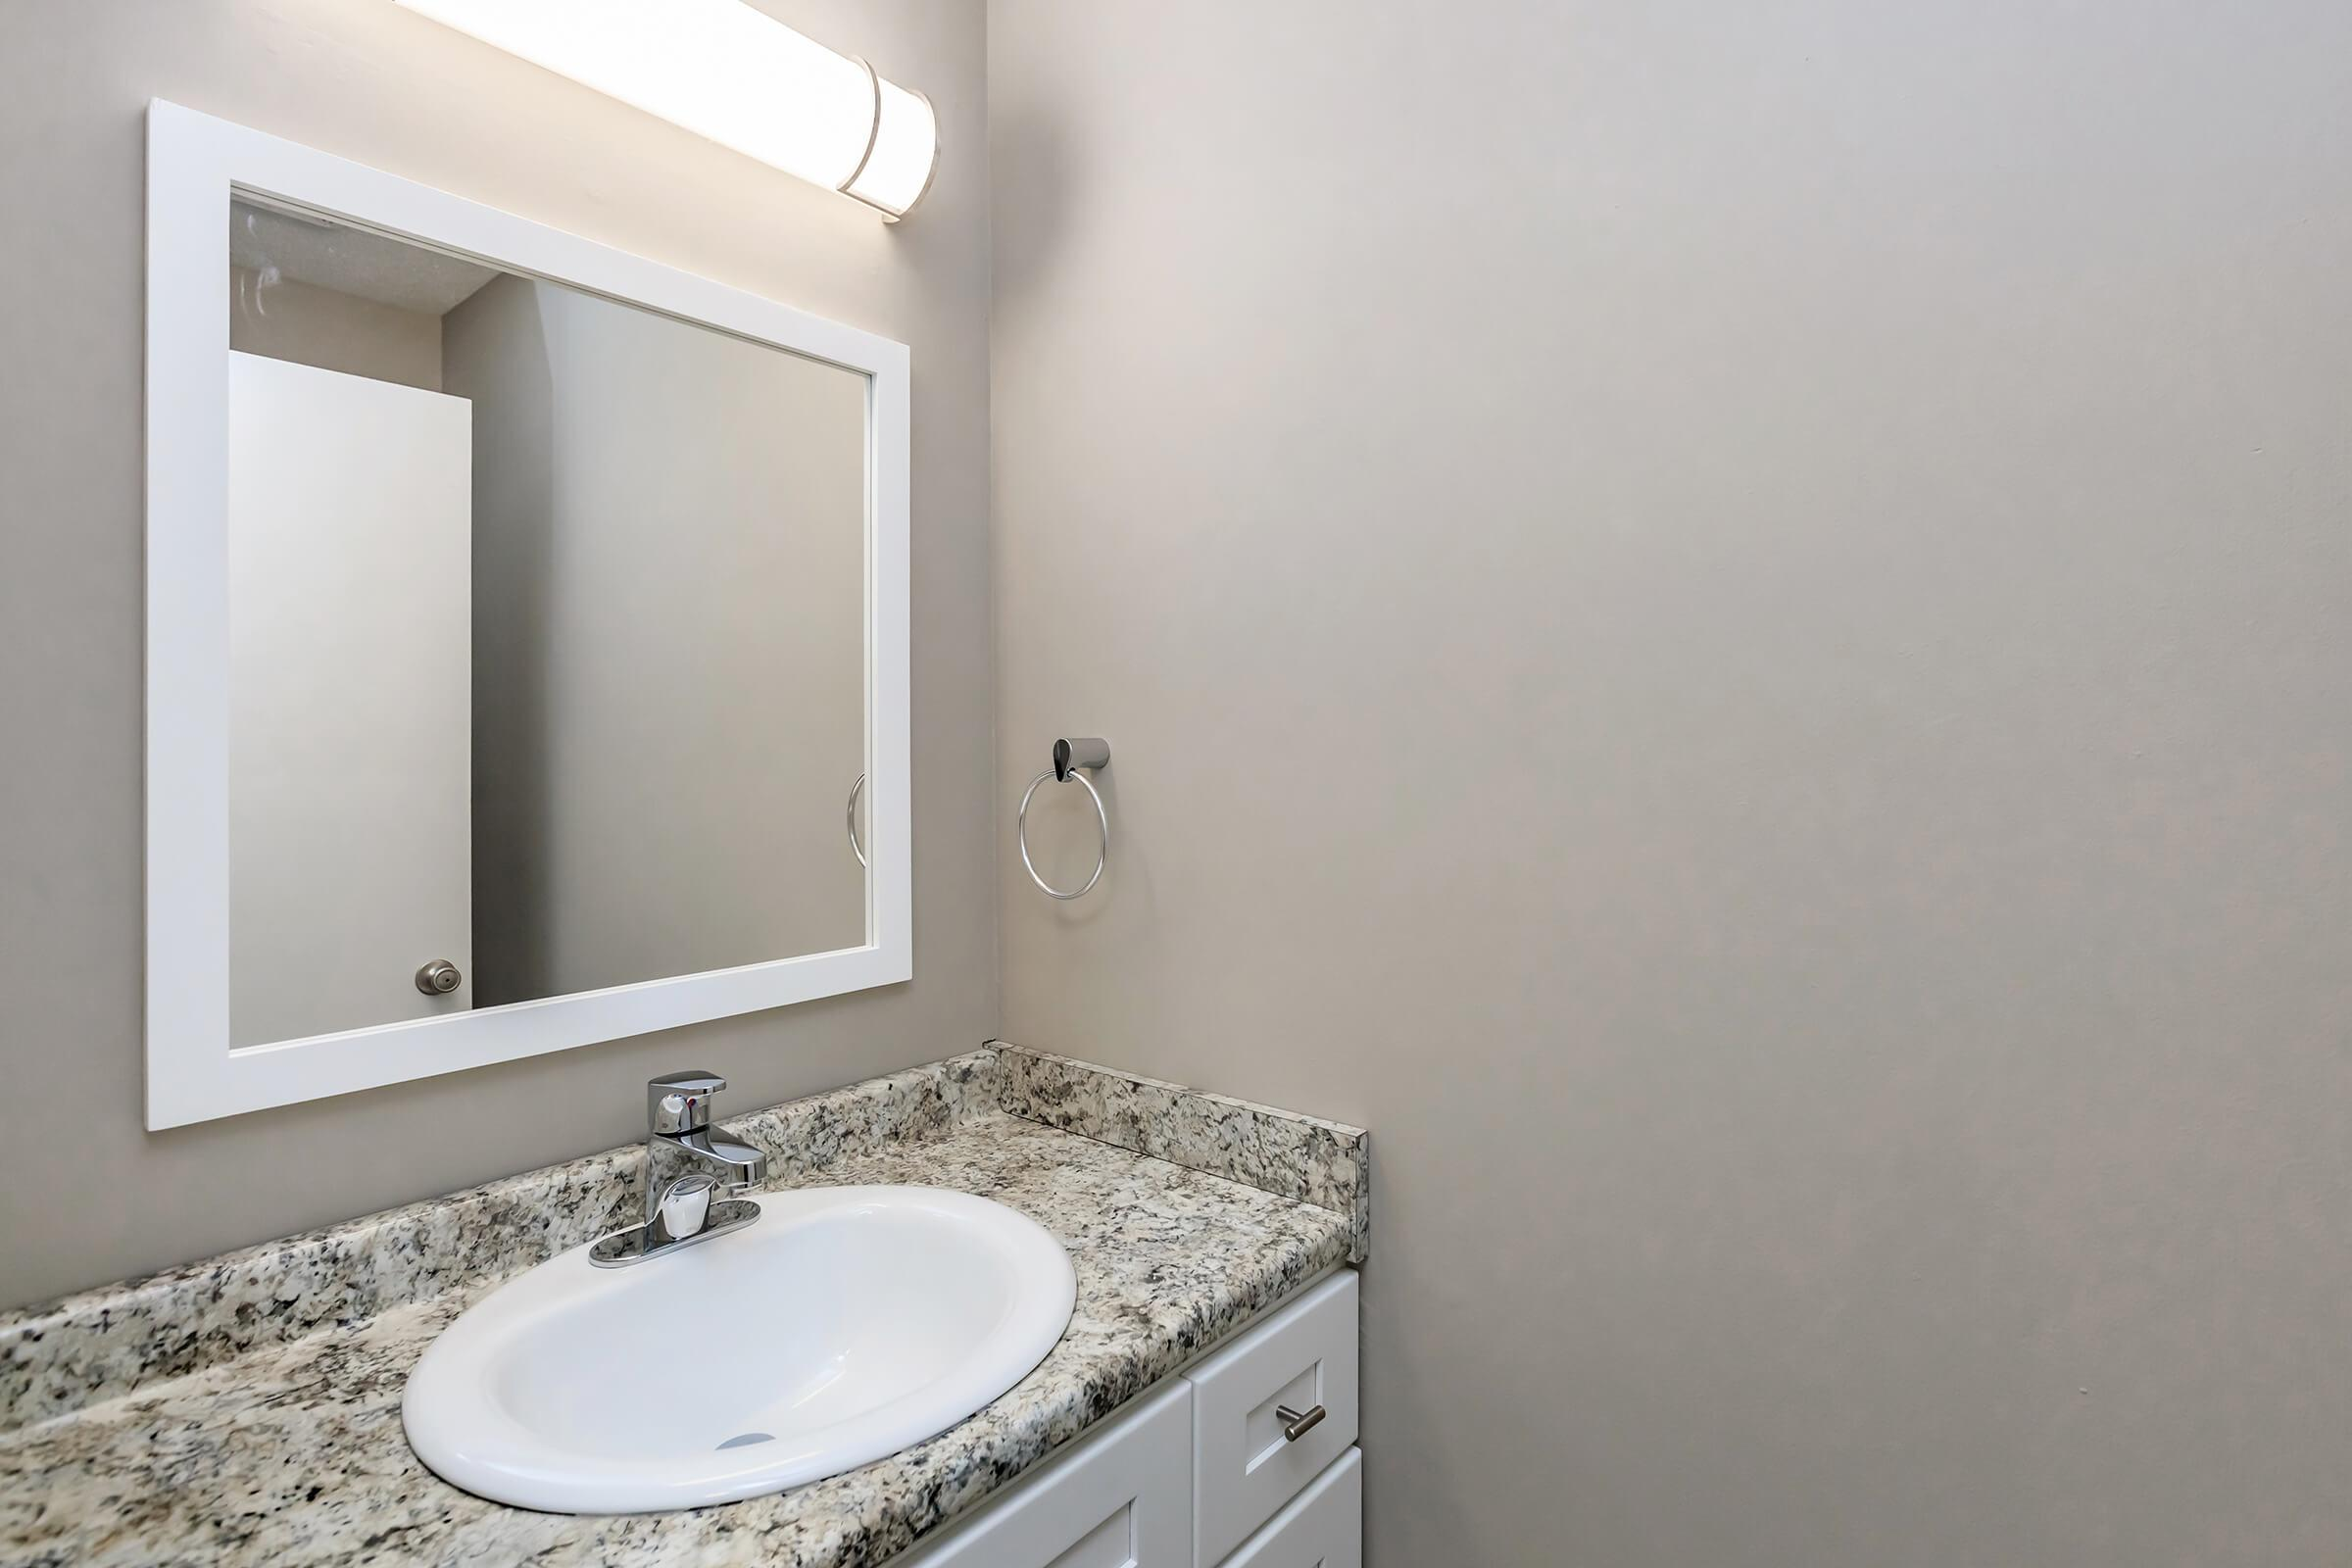 Beautiful Bathroom Countertops Here at The Magnolia at Laurel Ridge Apartments in Chattanooga, TN